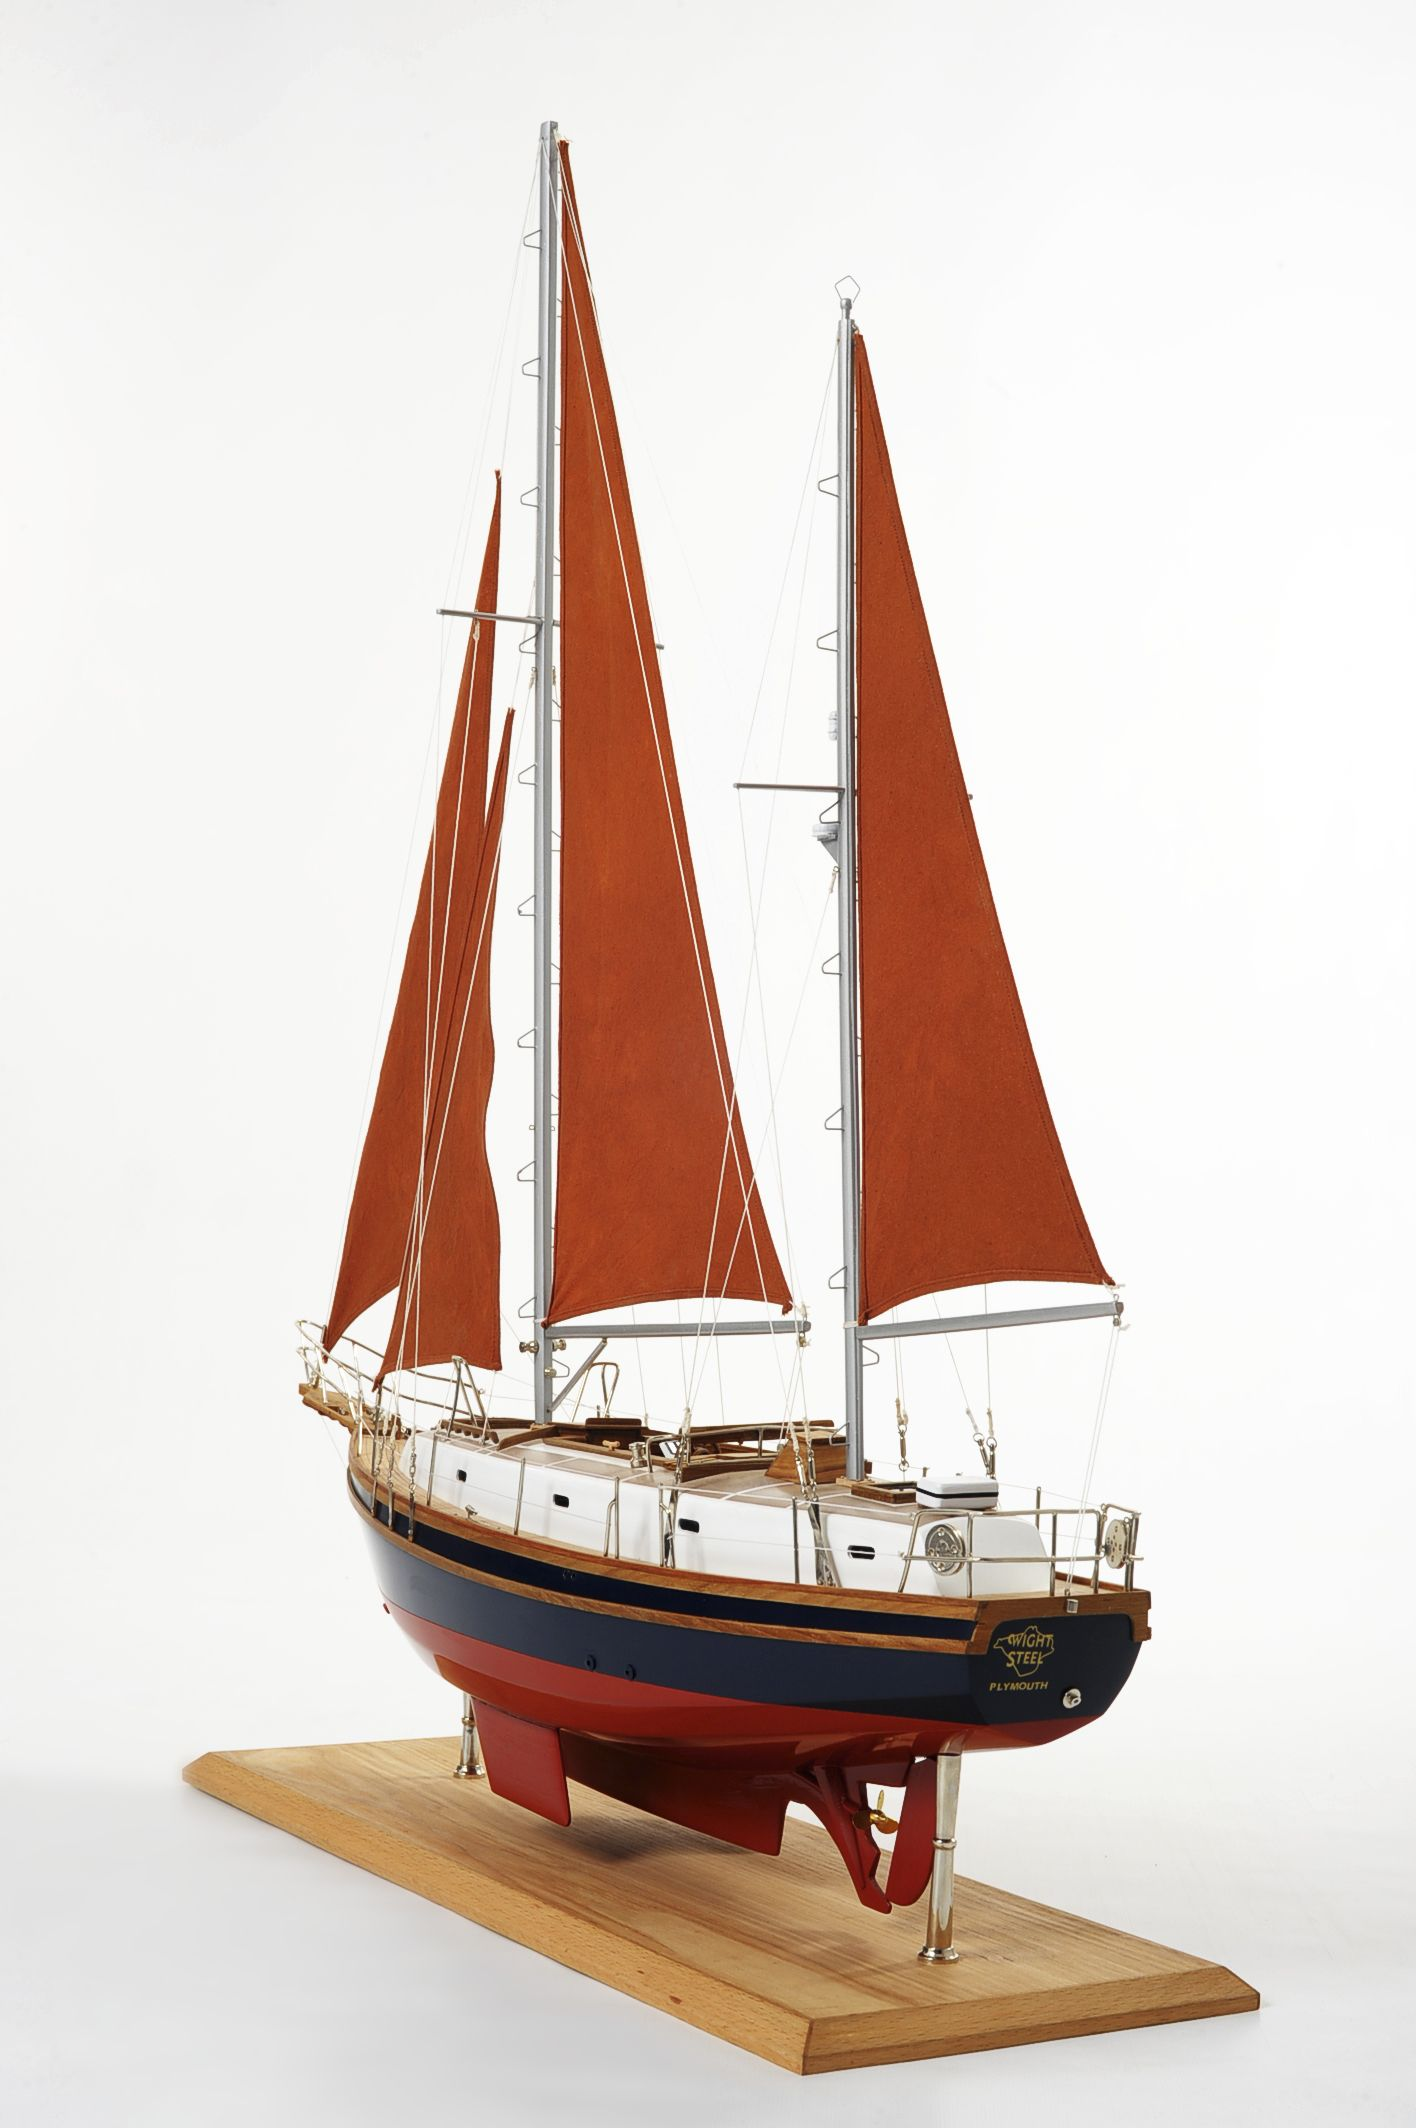 1483-6469-Wight-Steel-Sailing-Yacht